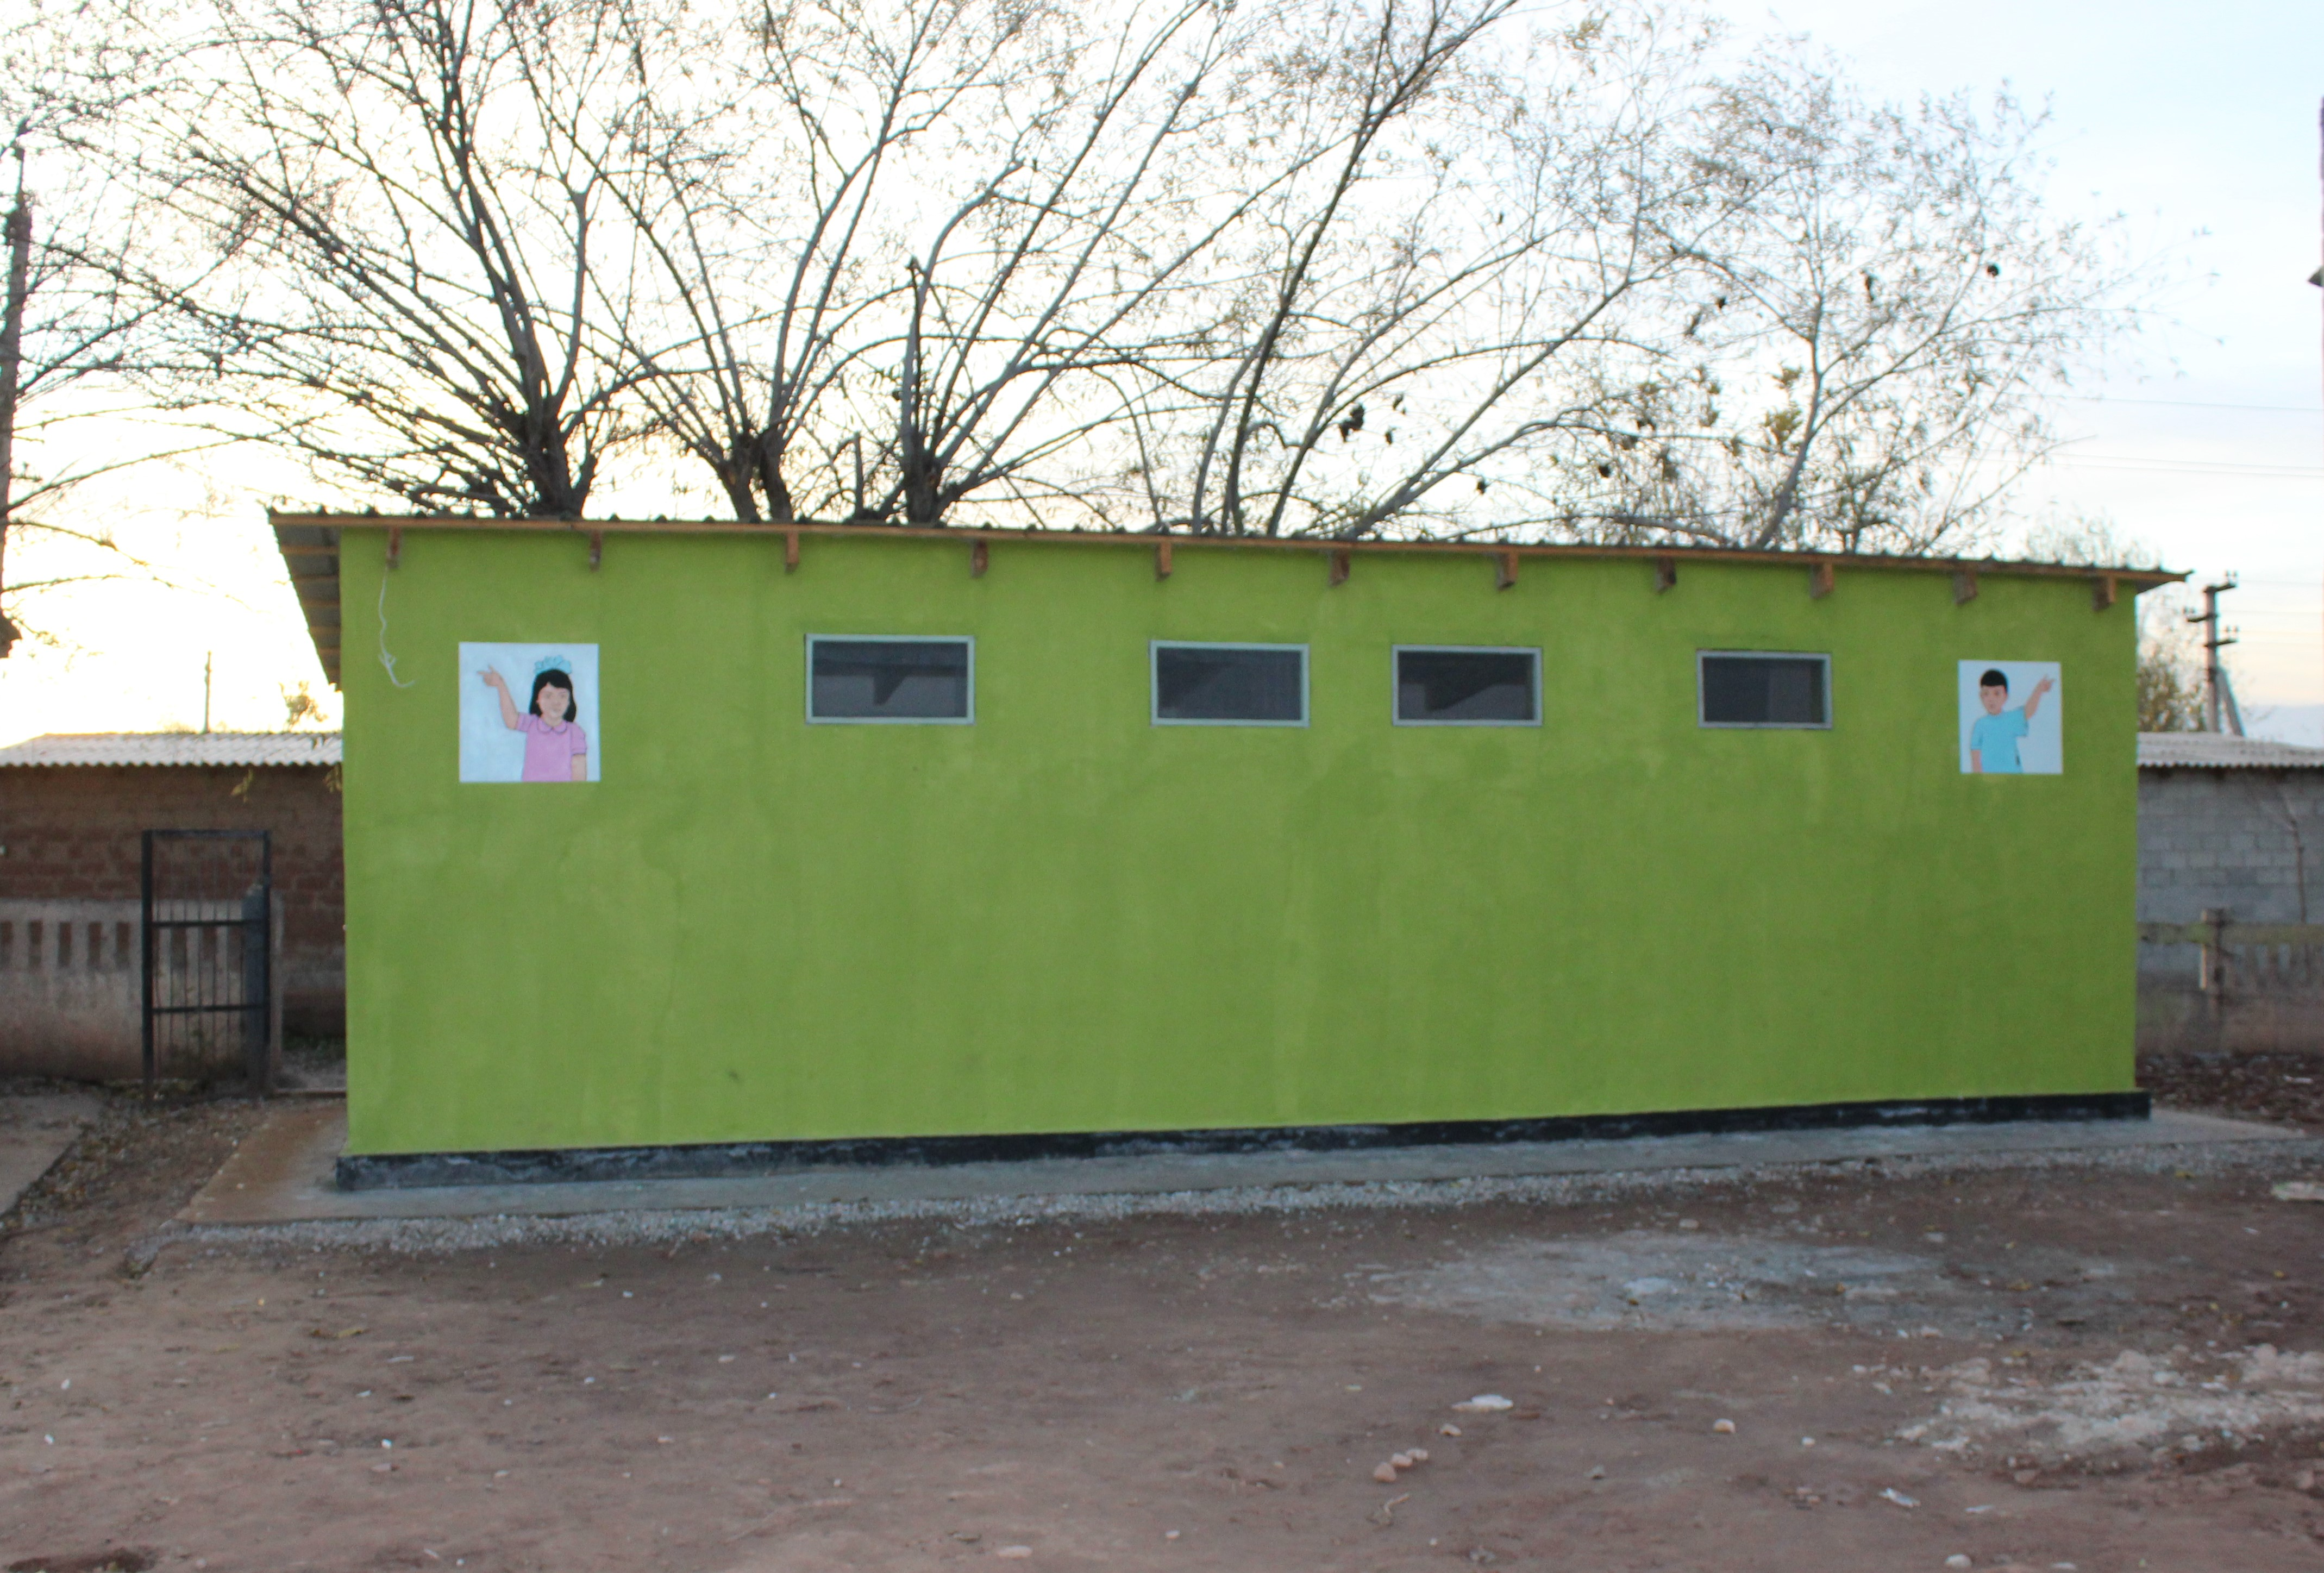 The new school latrines in Yovon district, Tajikistan. Photo by Komilova Khosiyatkhon for IntraHealth International.